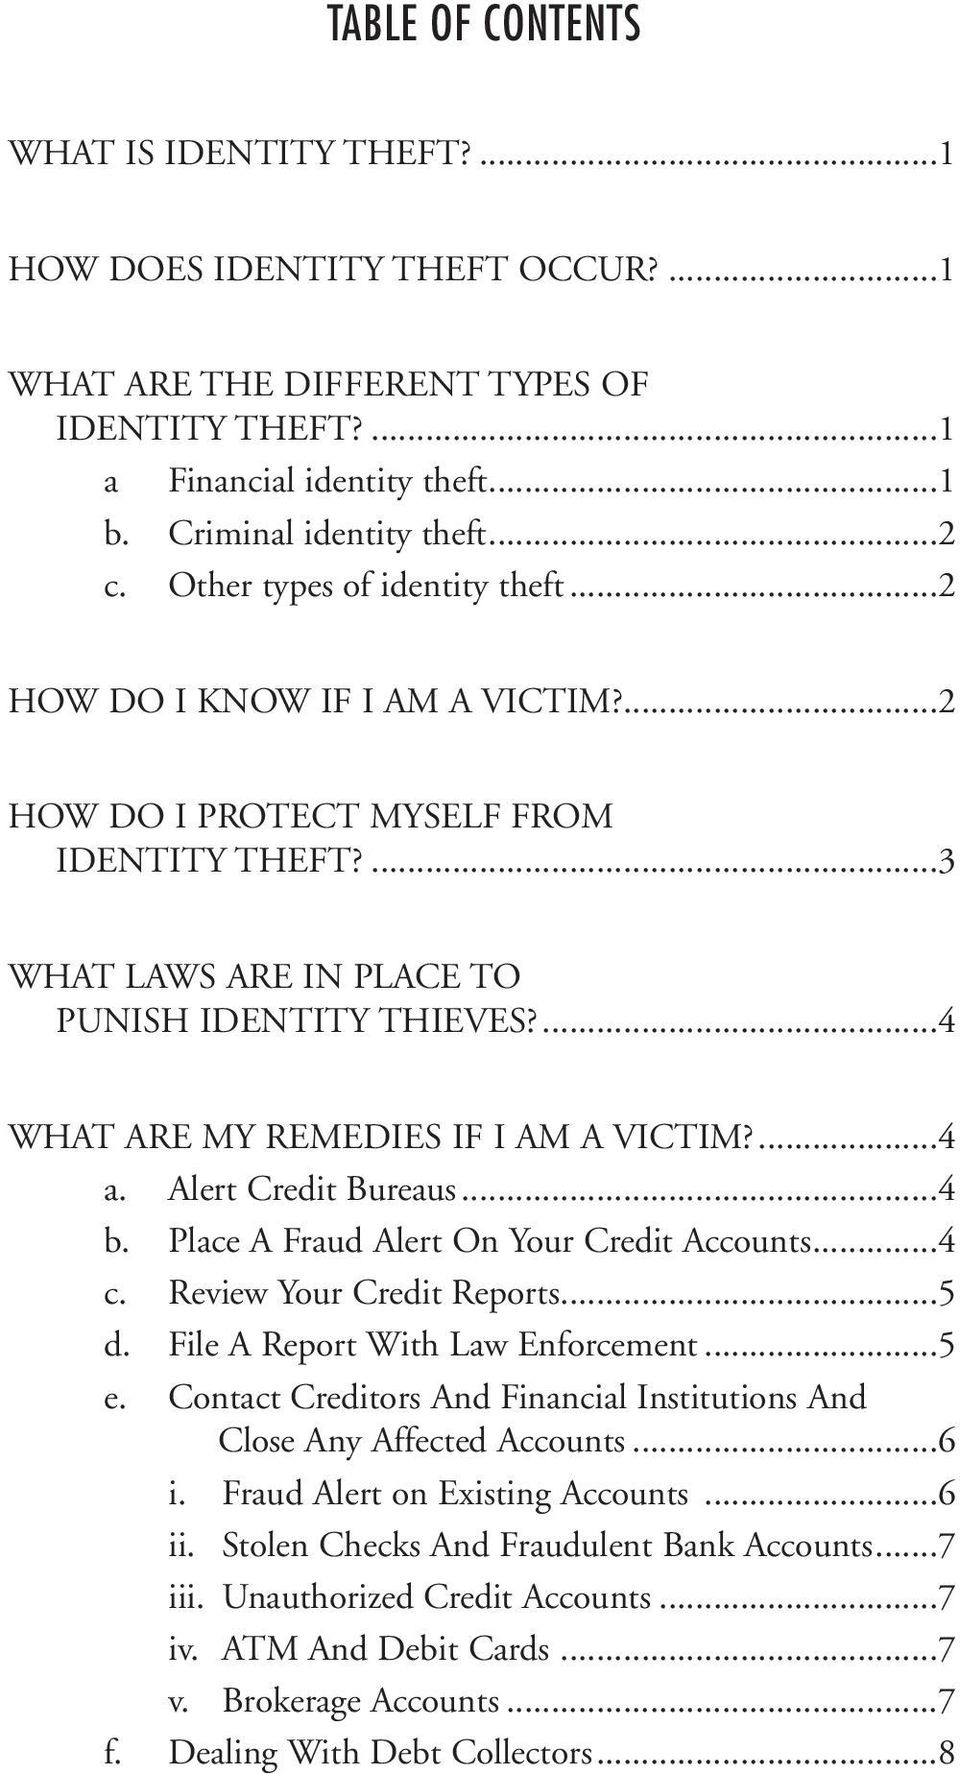 ...4 WHAT ARE MY REMEDIES IF I AM A VICTIM?...4 a. Alert Credit Bureaus...4 b. Place A Fraud Alert On Your Credit Accounts...4 c. Review Your Credit Reports...5 d. File A Report With Law Enforcement.